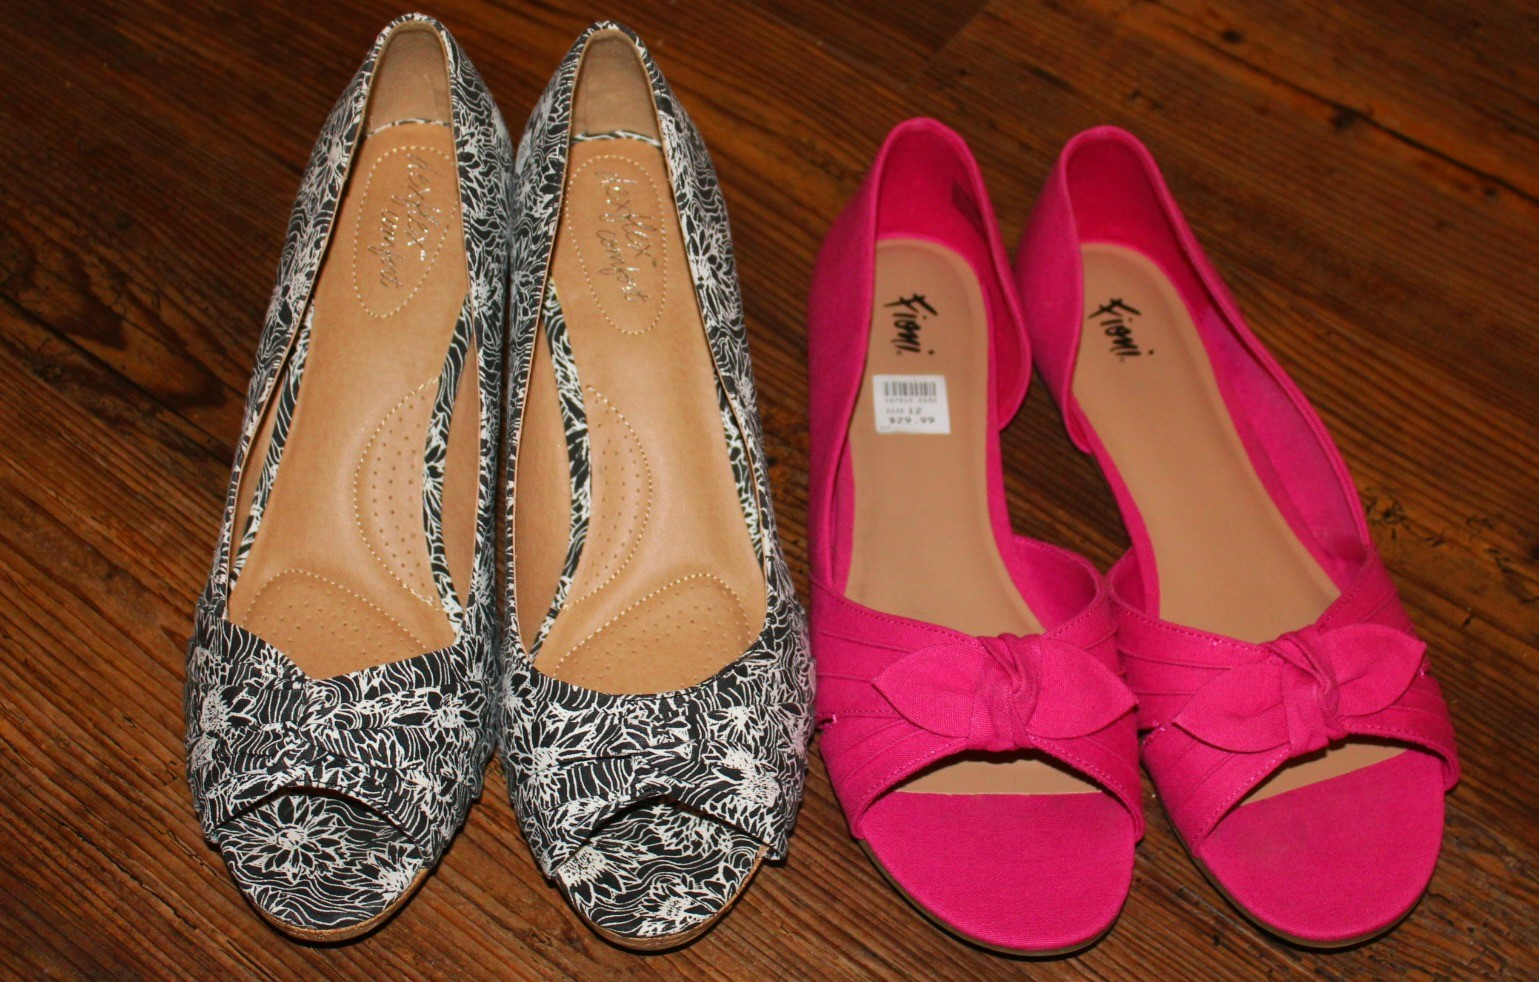 d8413a87218 Payless Shoes August Sale + My Shoe Deals - Tipsy Heelz